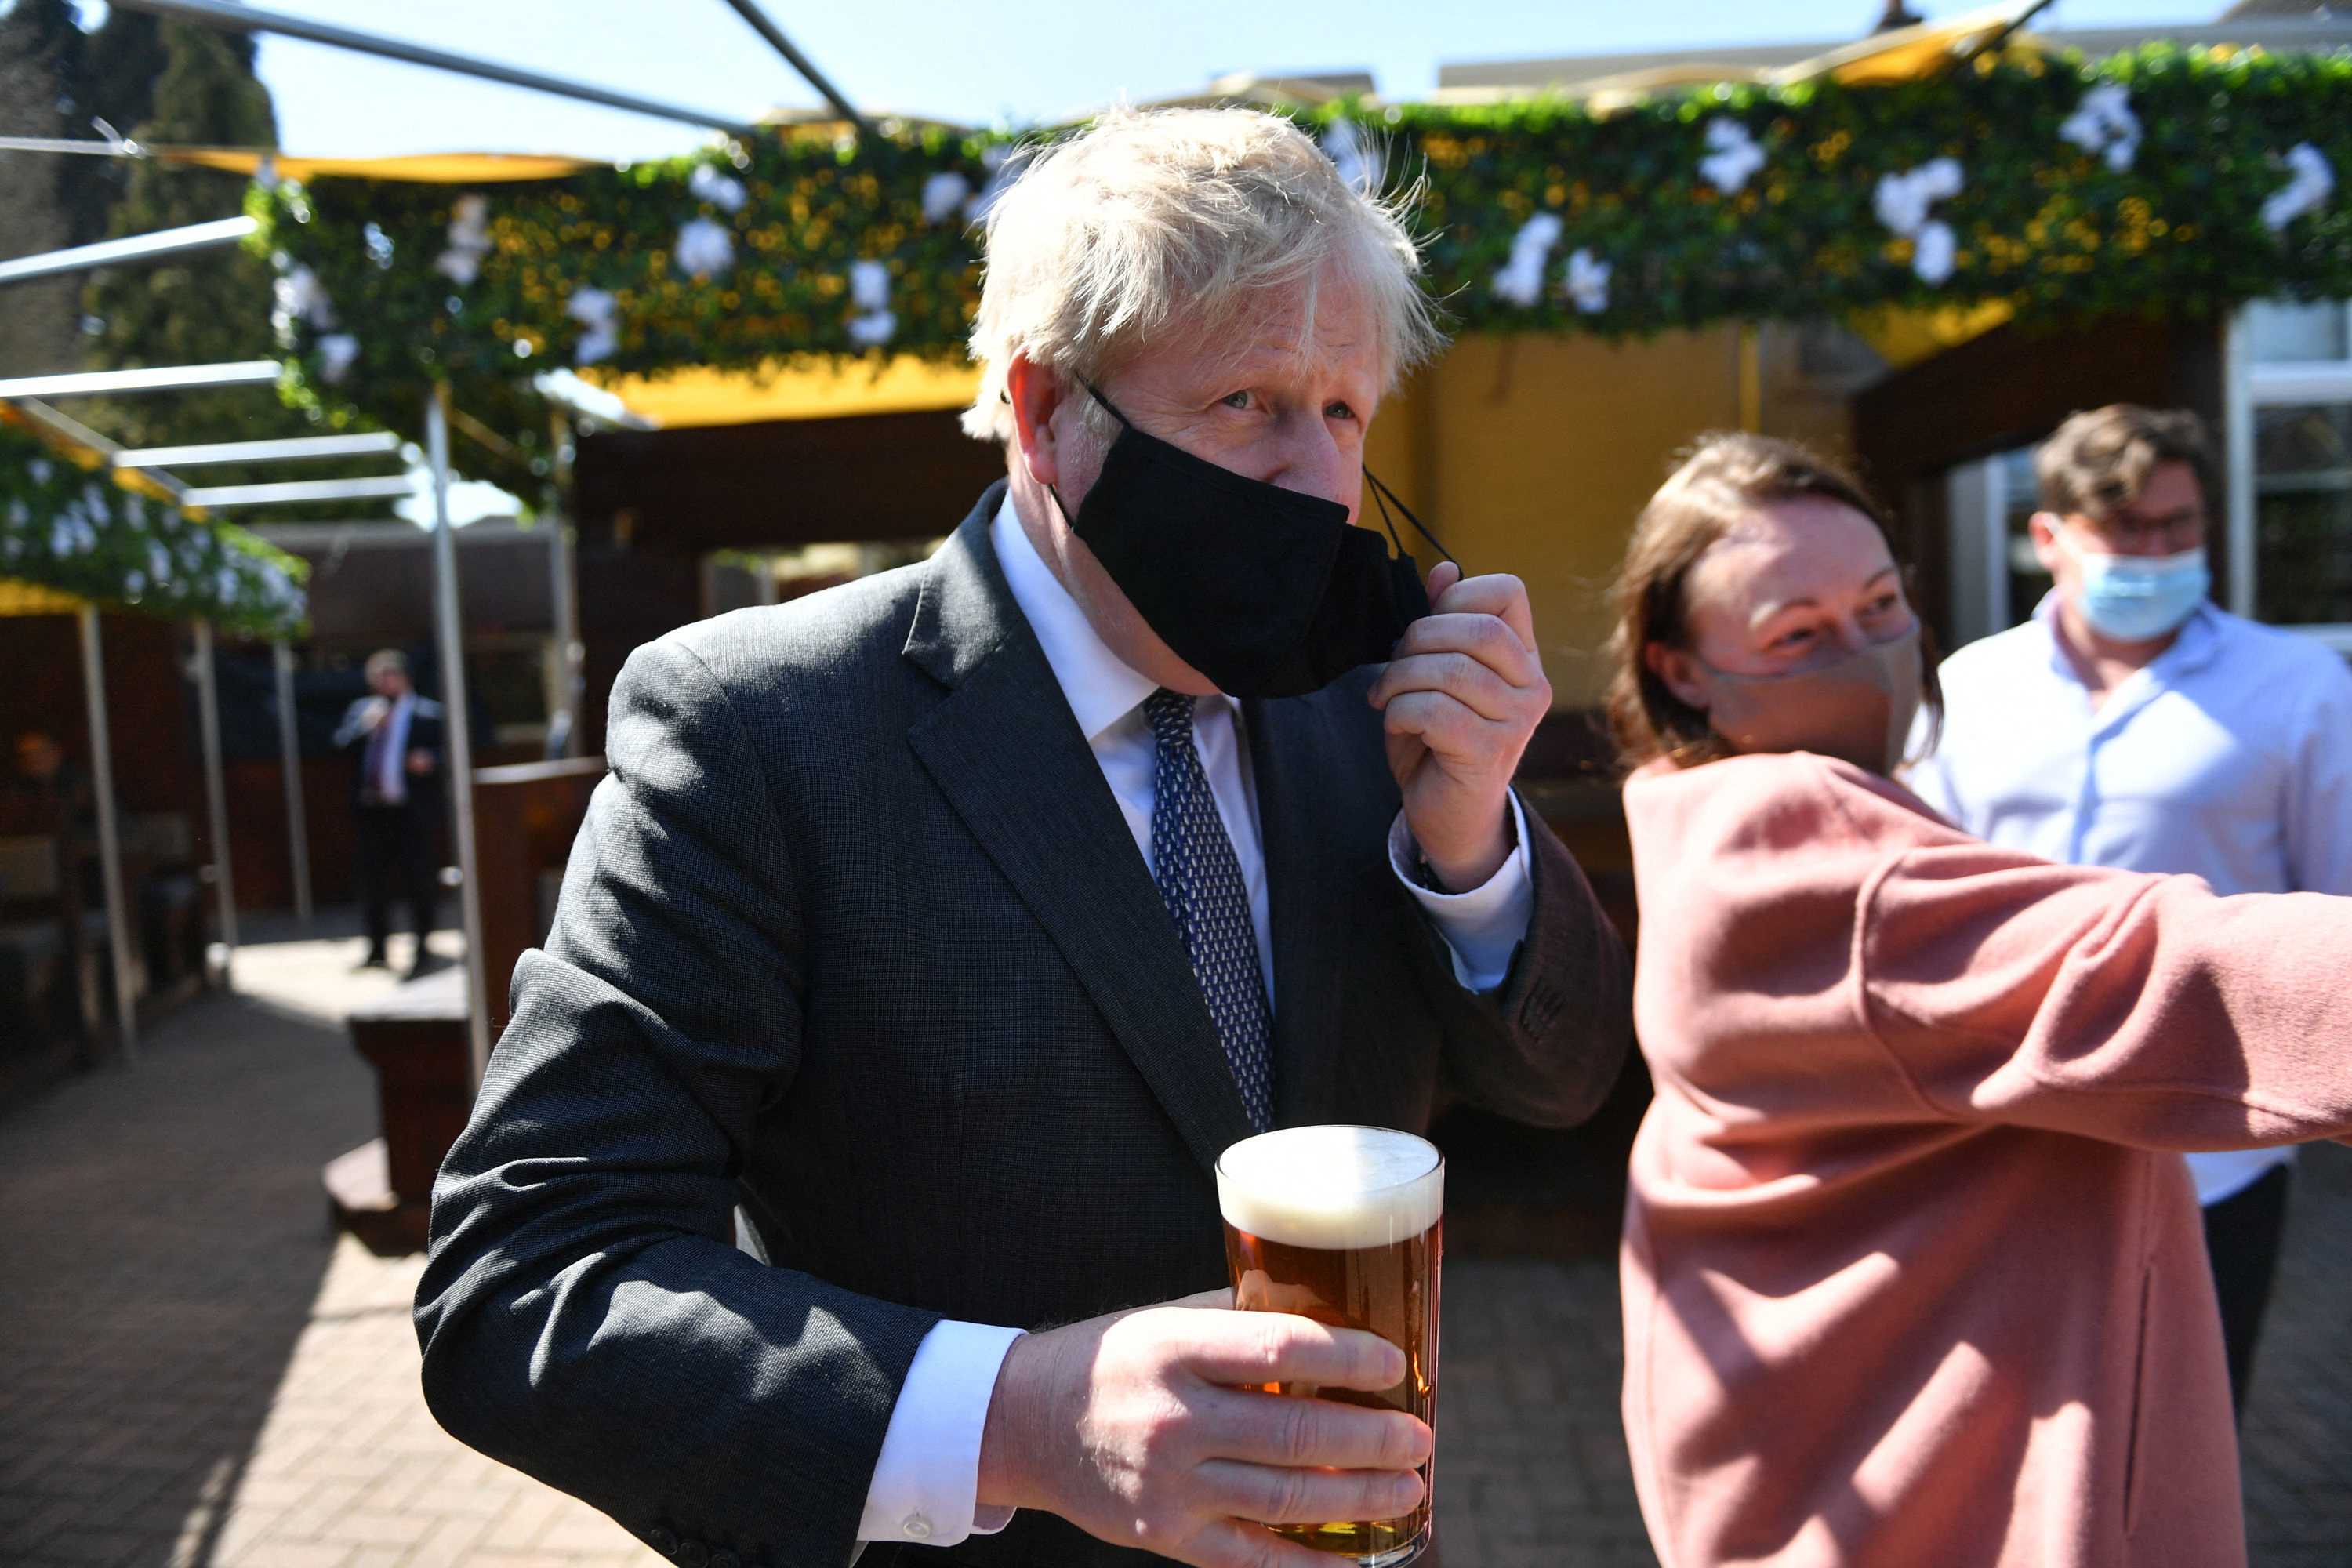 Boris Johnson removes his mask while carrying a pint in a pub garden, neither of which are allowed under current coronavirus rules